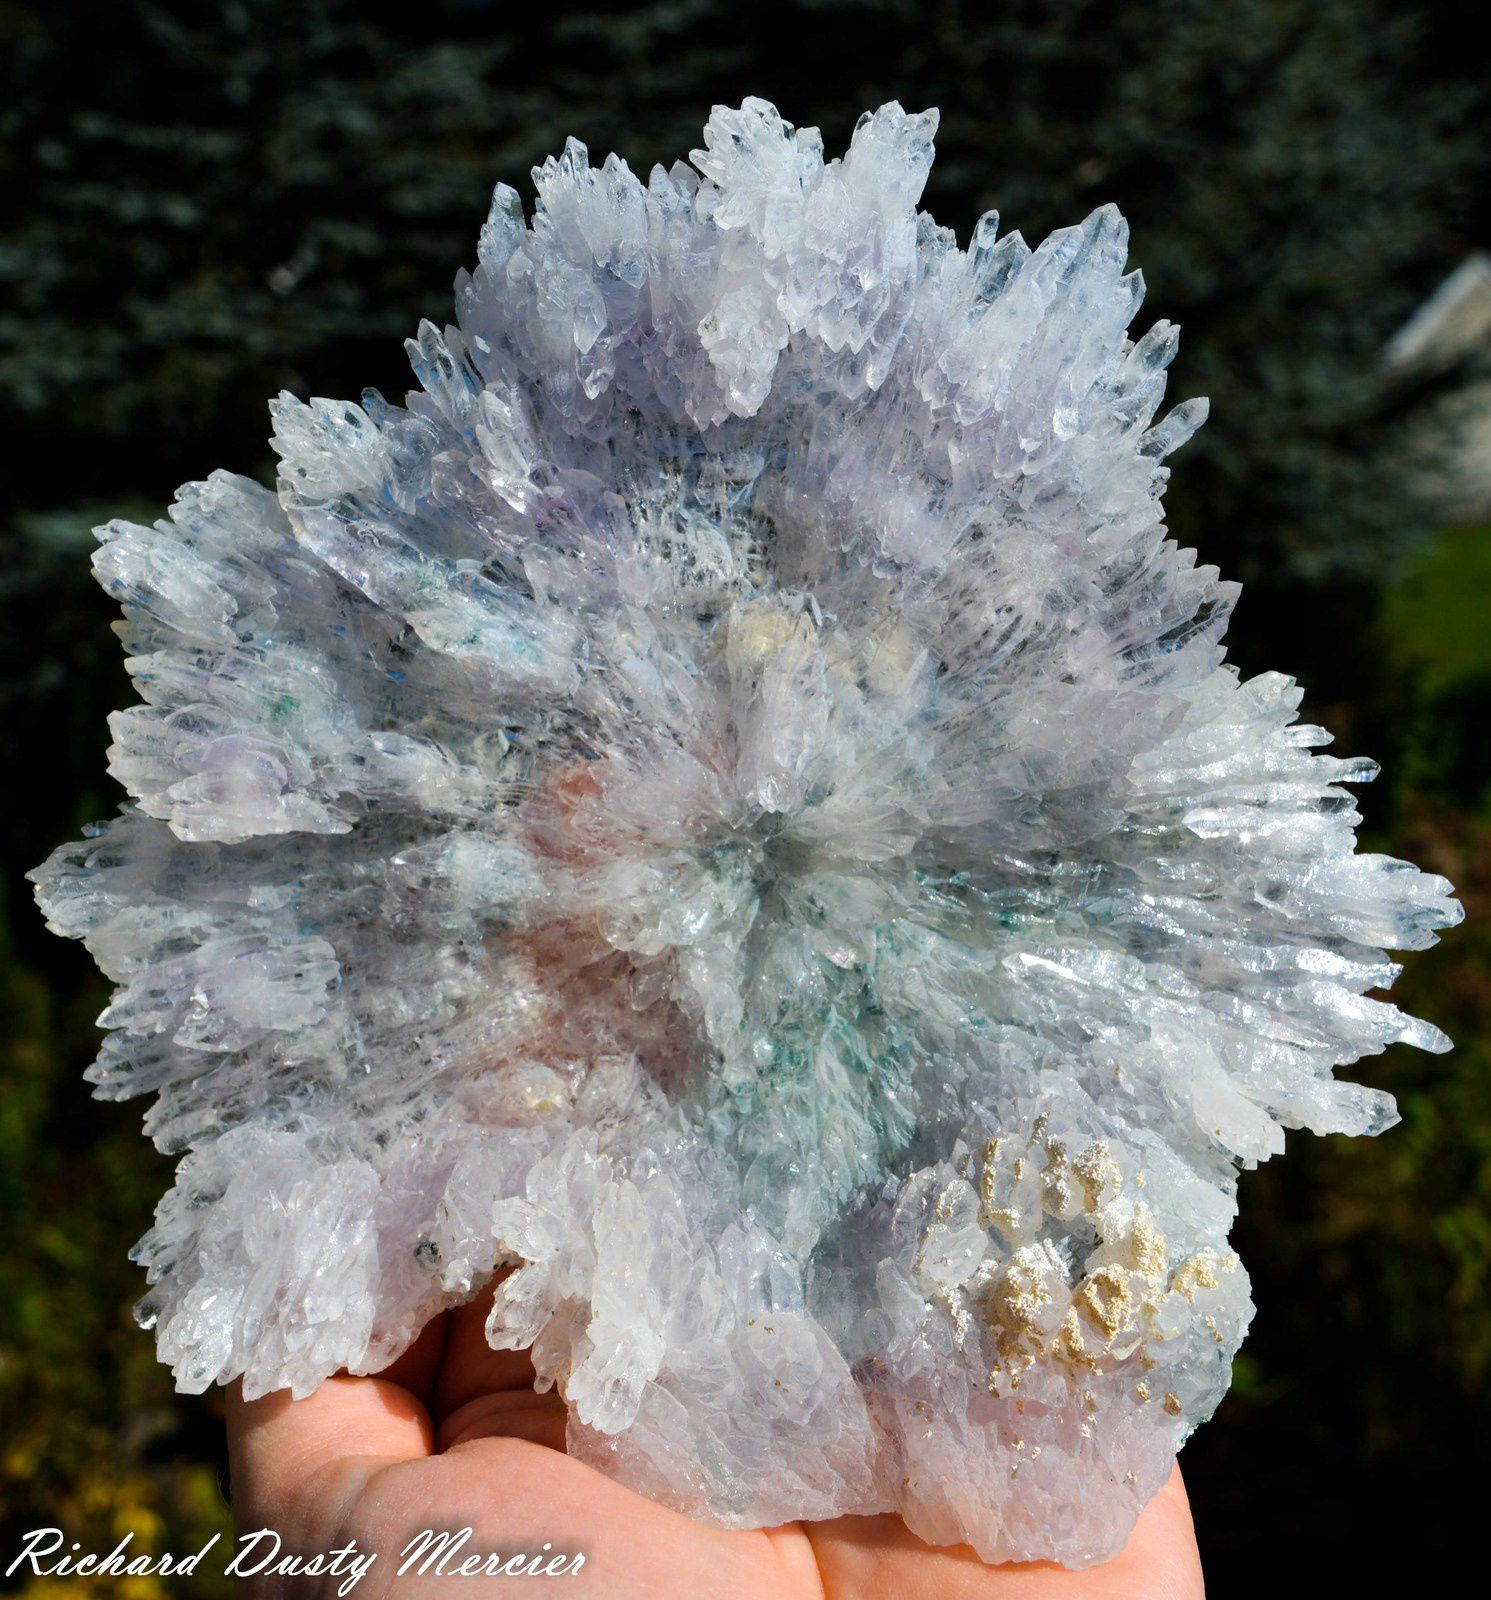 Amethyst Flower fom Irai Mine, Brasil (Specimen and Photo: Richard Dusty Mercier)